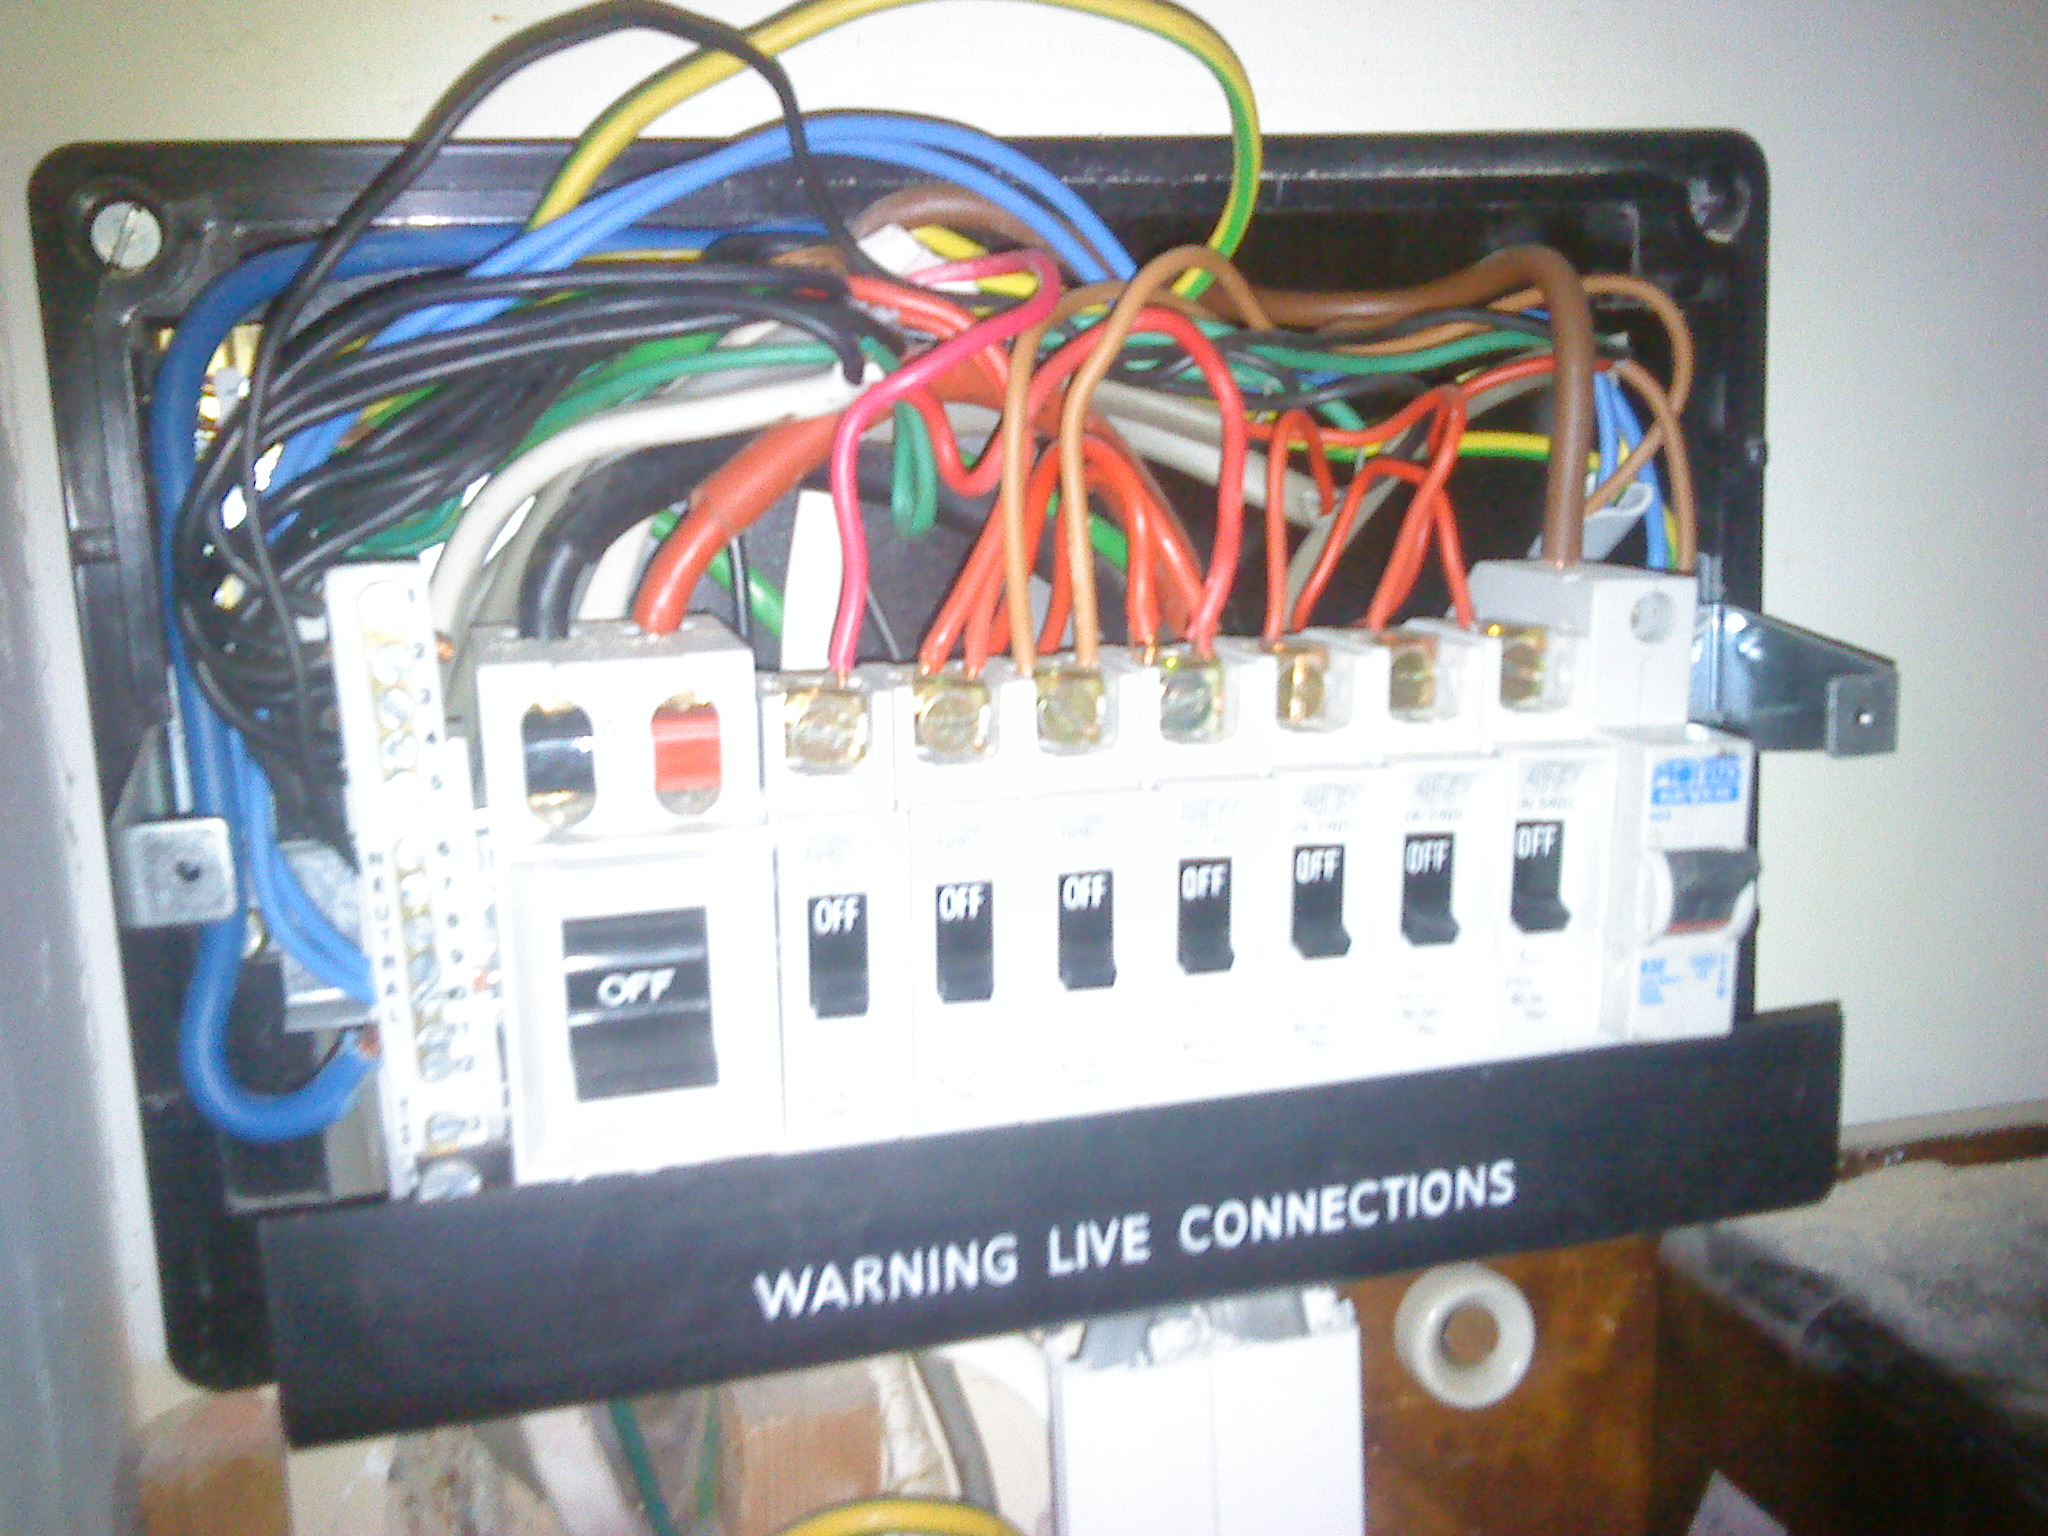 [ZTBE_9966]  AM_6728] Rcd Fuse Box Schematic Wiring | Wylex Fuse Box Wiring Diagram |  | Hapolo Itive Lukep Xero Mohammedshrine Librar Wiring 101